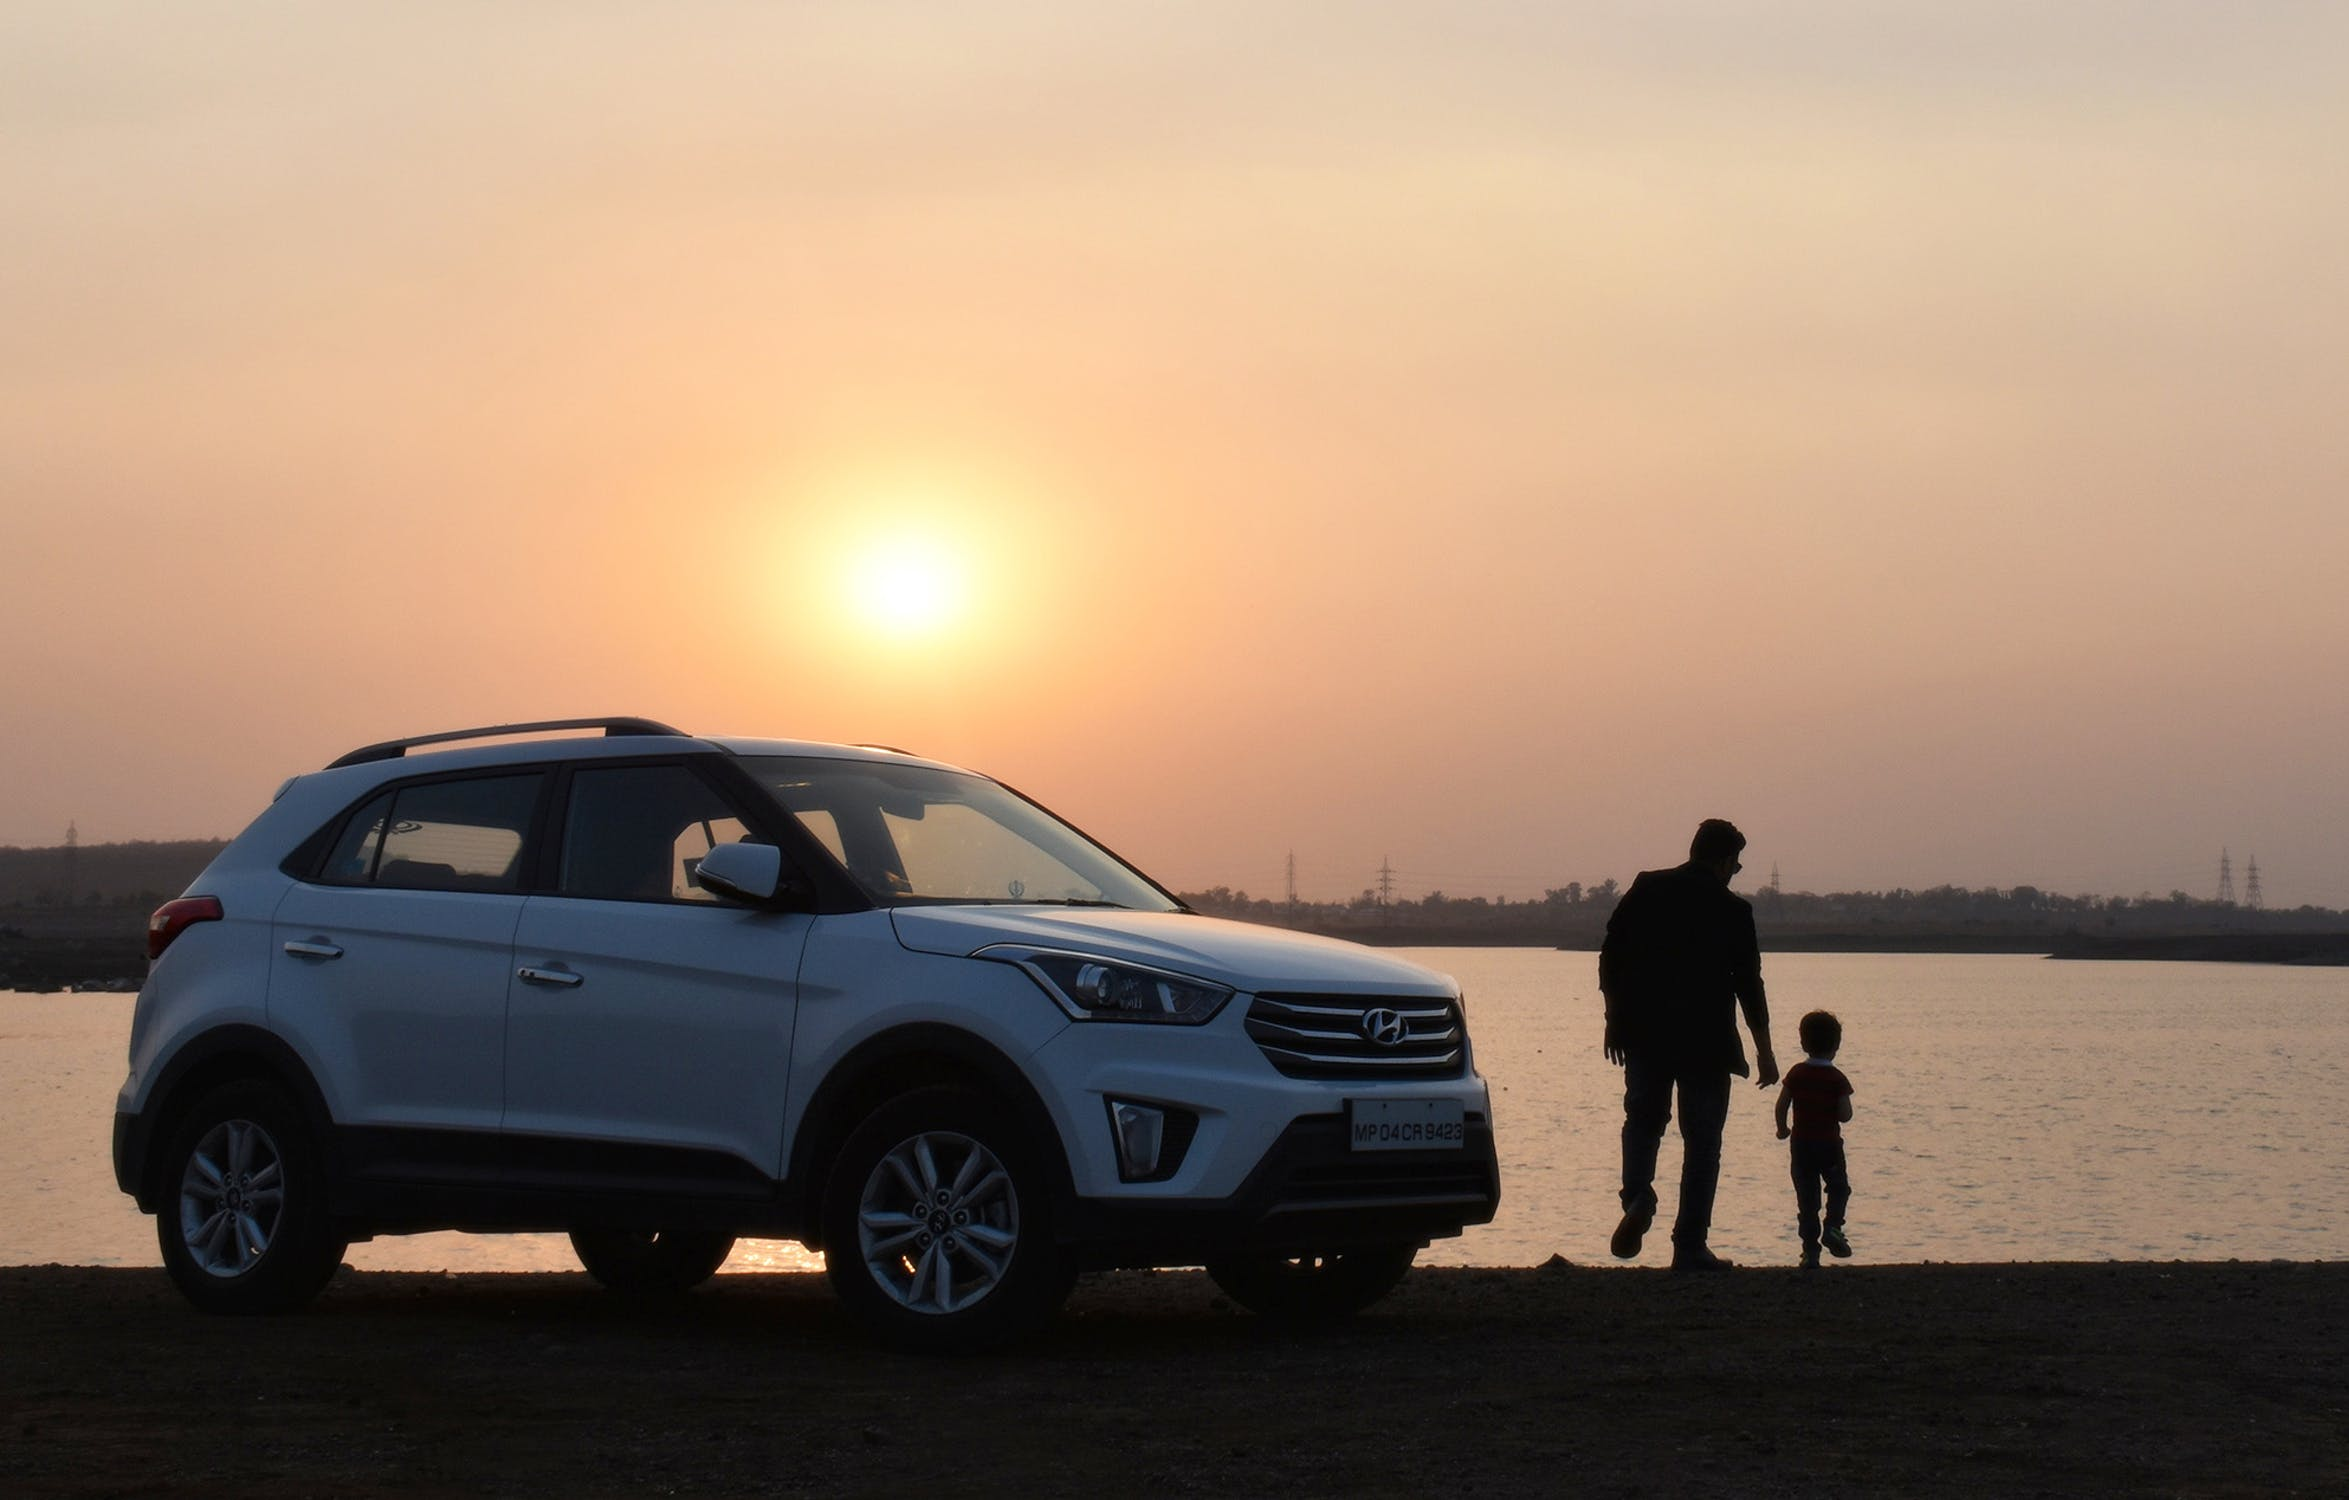 Choose The Perfect Vehicle For Your Family Trip